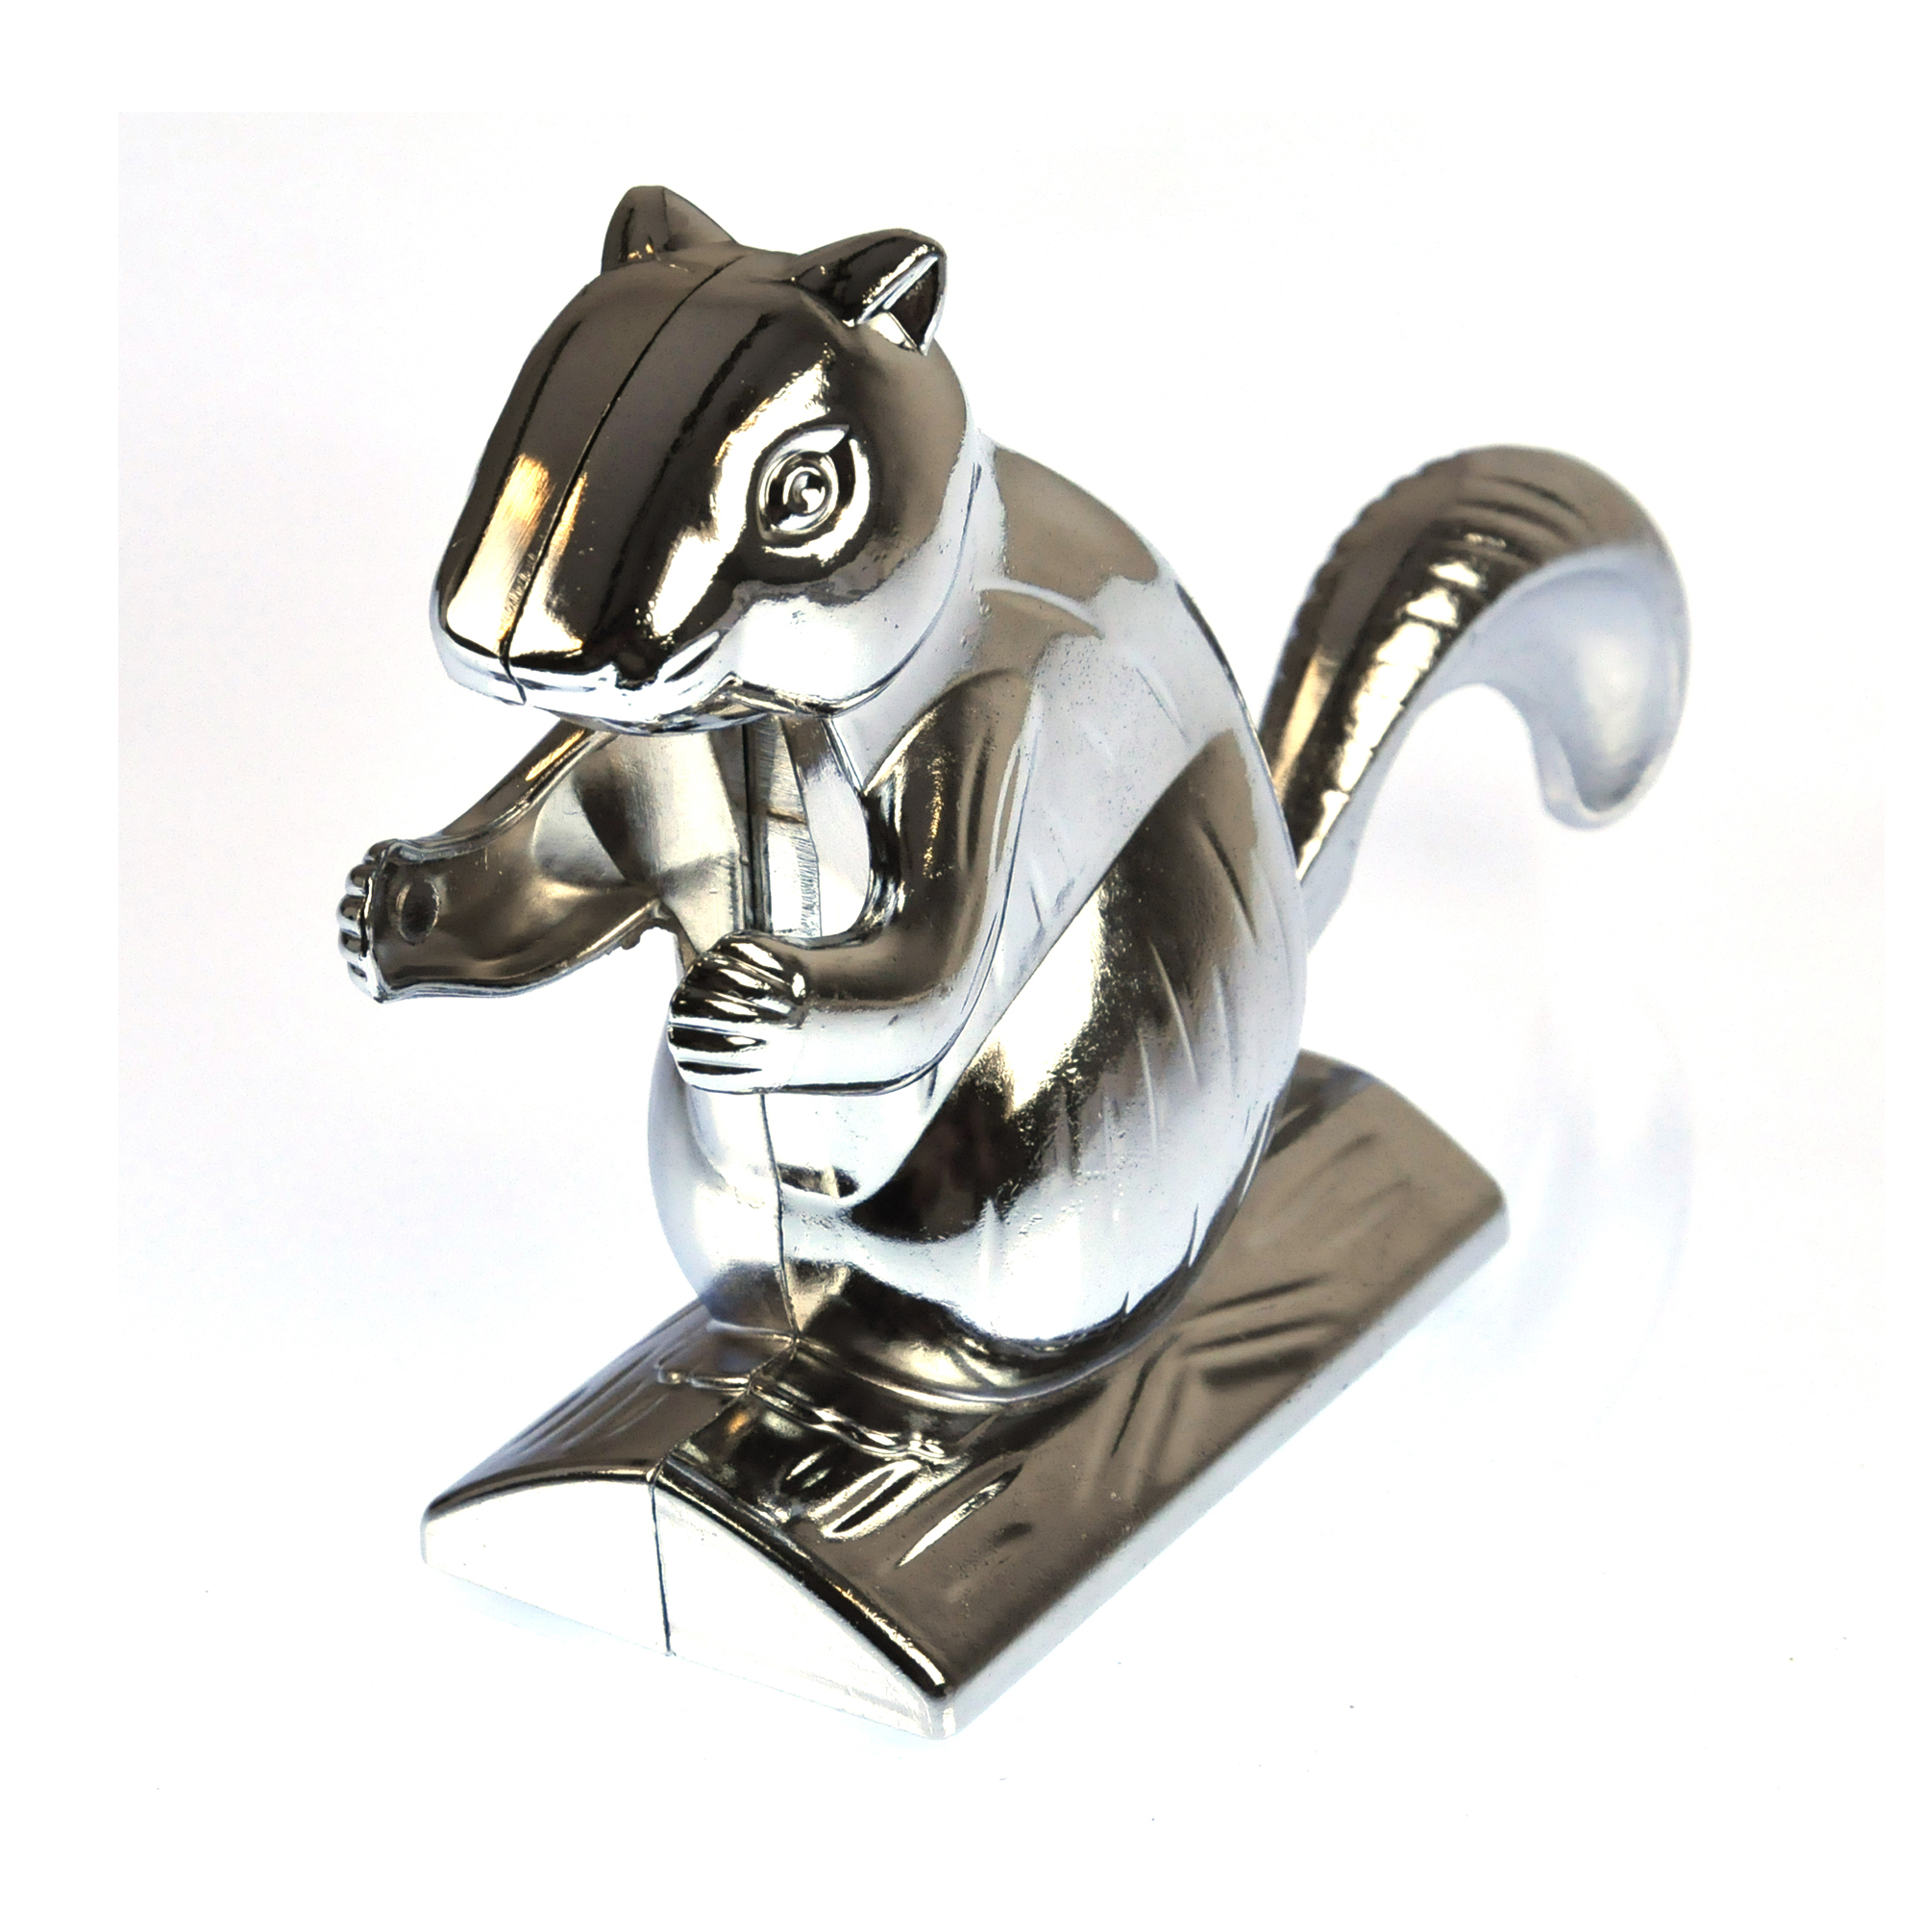 Nut cracker squirrel in chromed metal ebay - Squirrel nut crackers ...